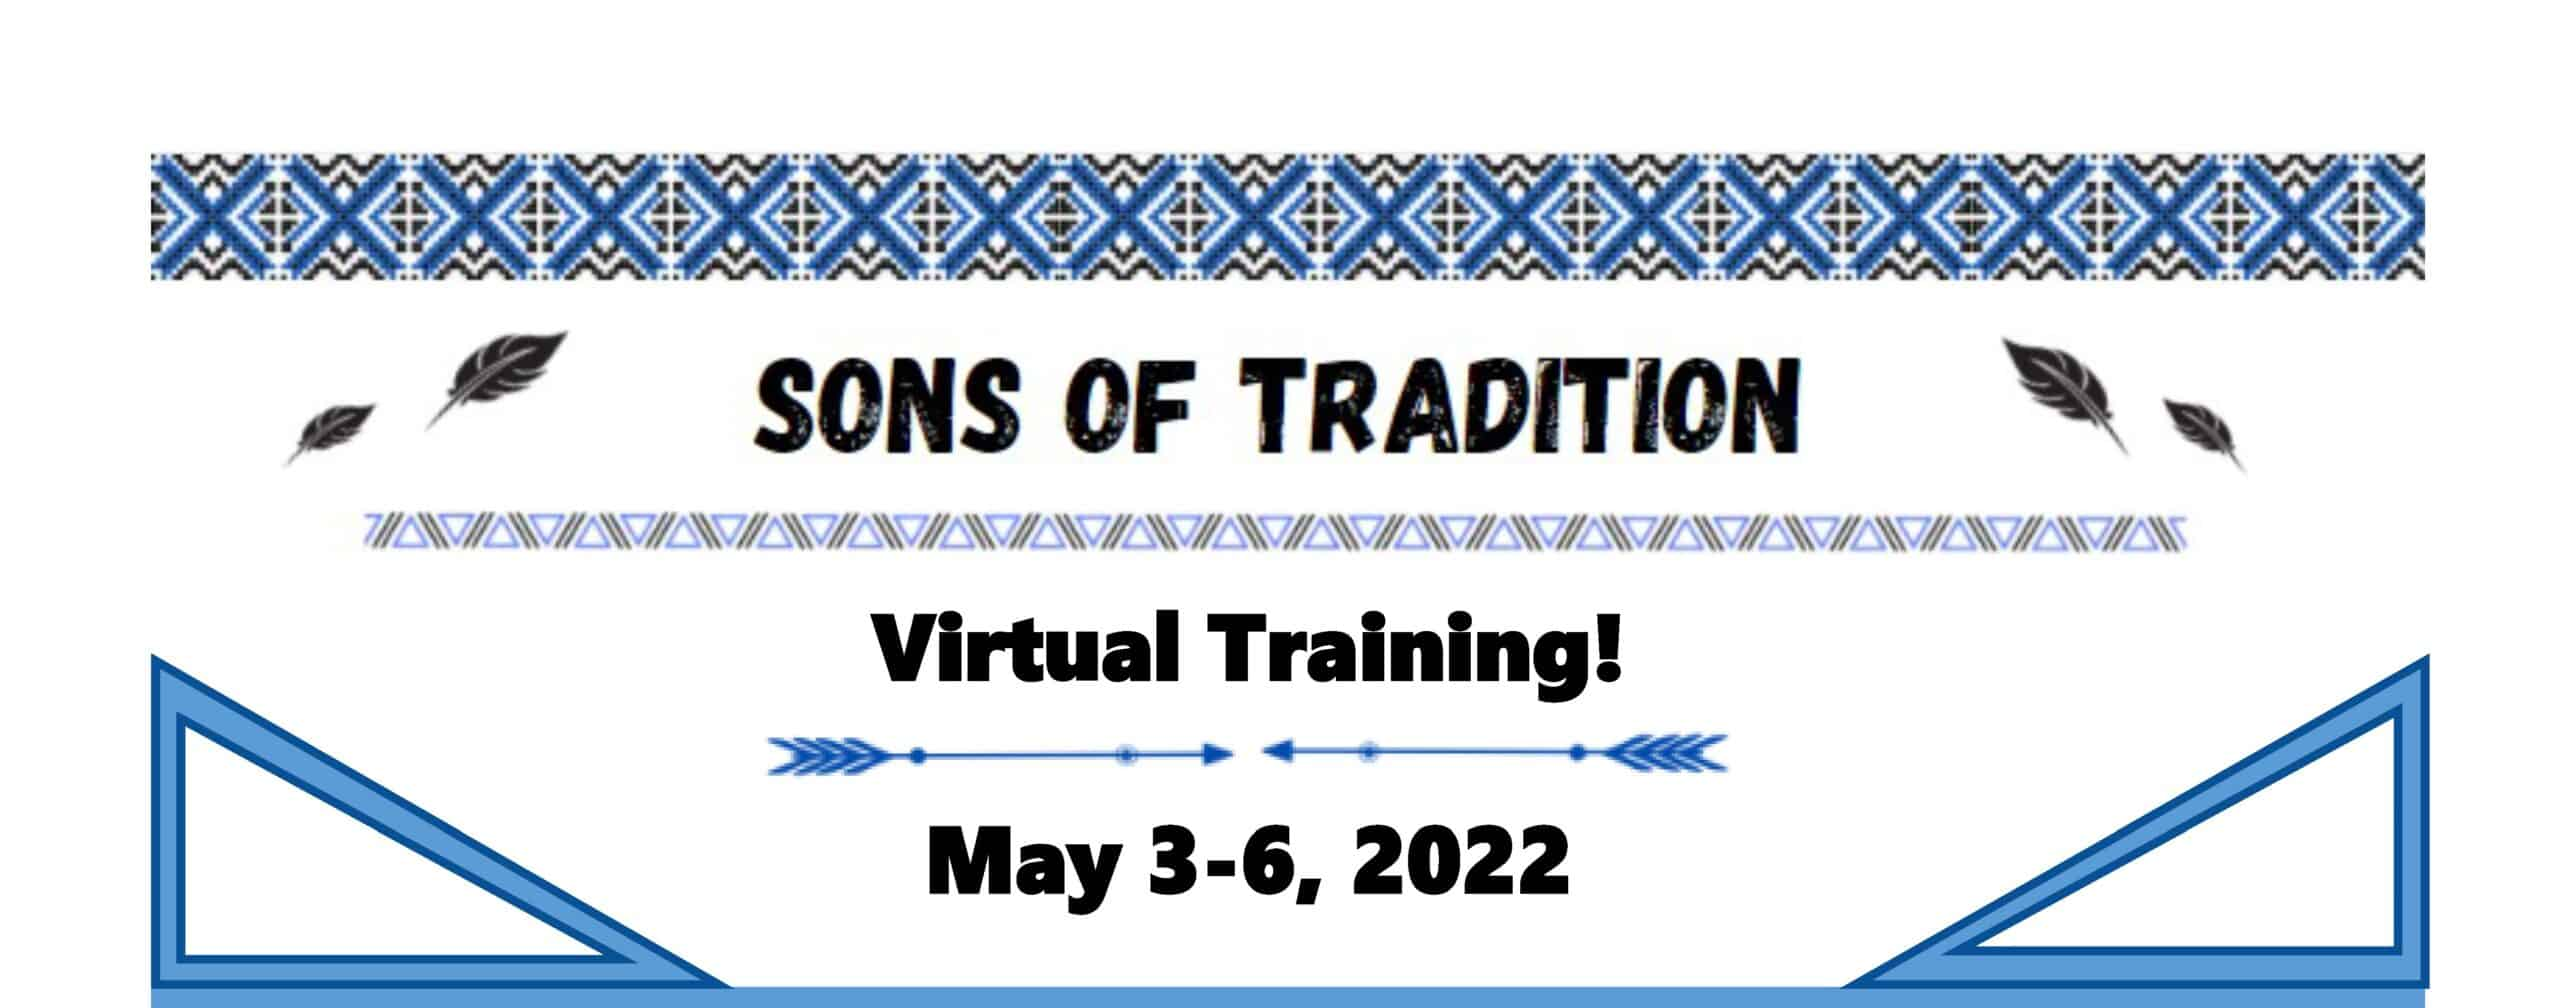 Sons of Tradition (May 3-6, 2022) – 4 Day Virtual Zoom Training